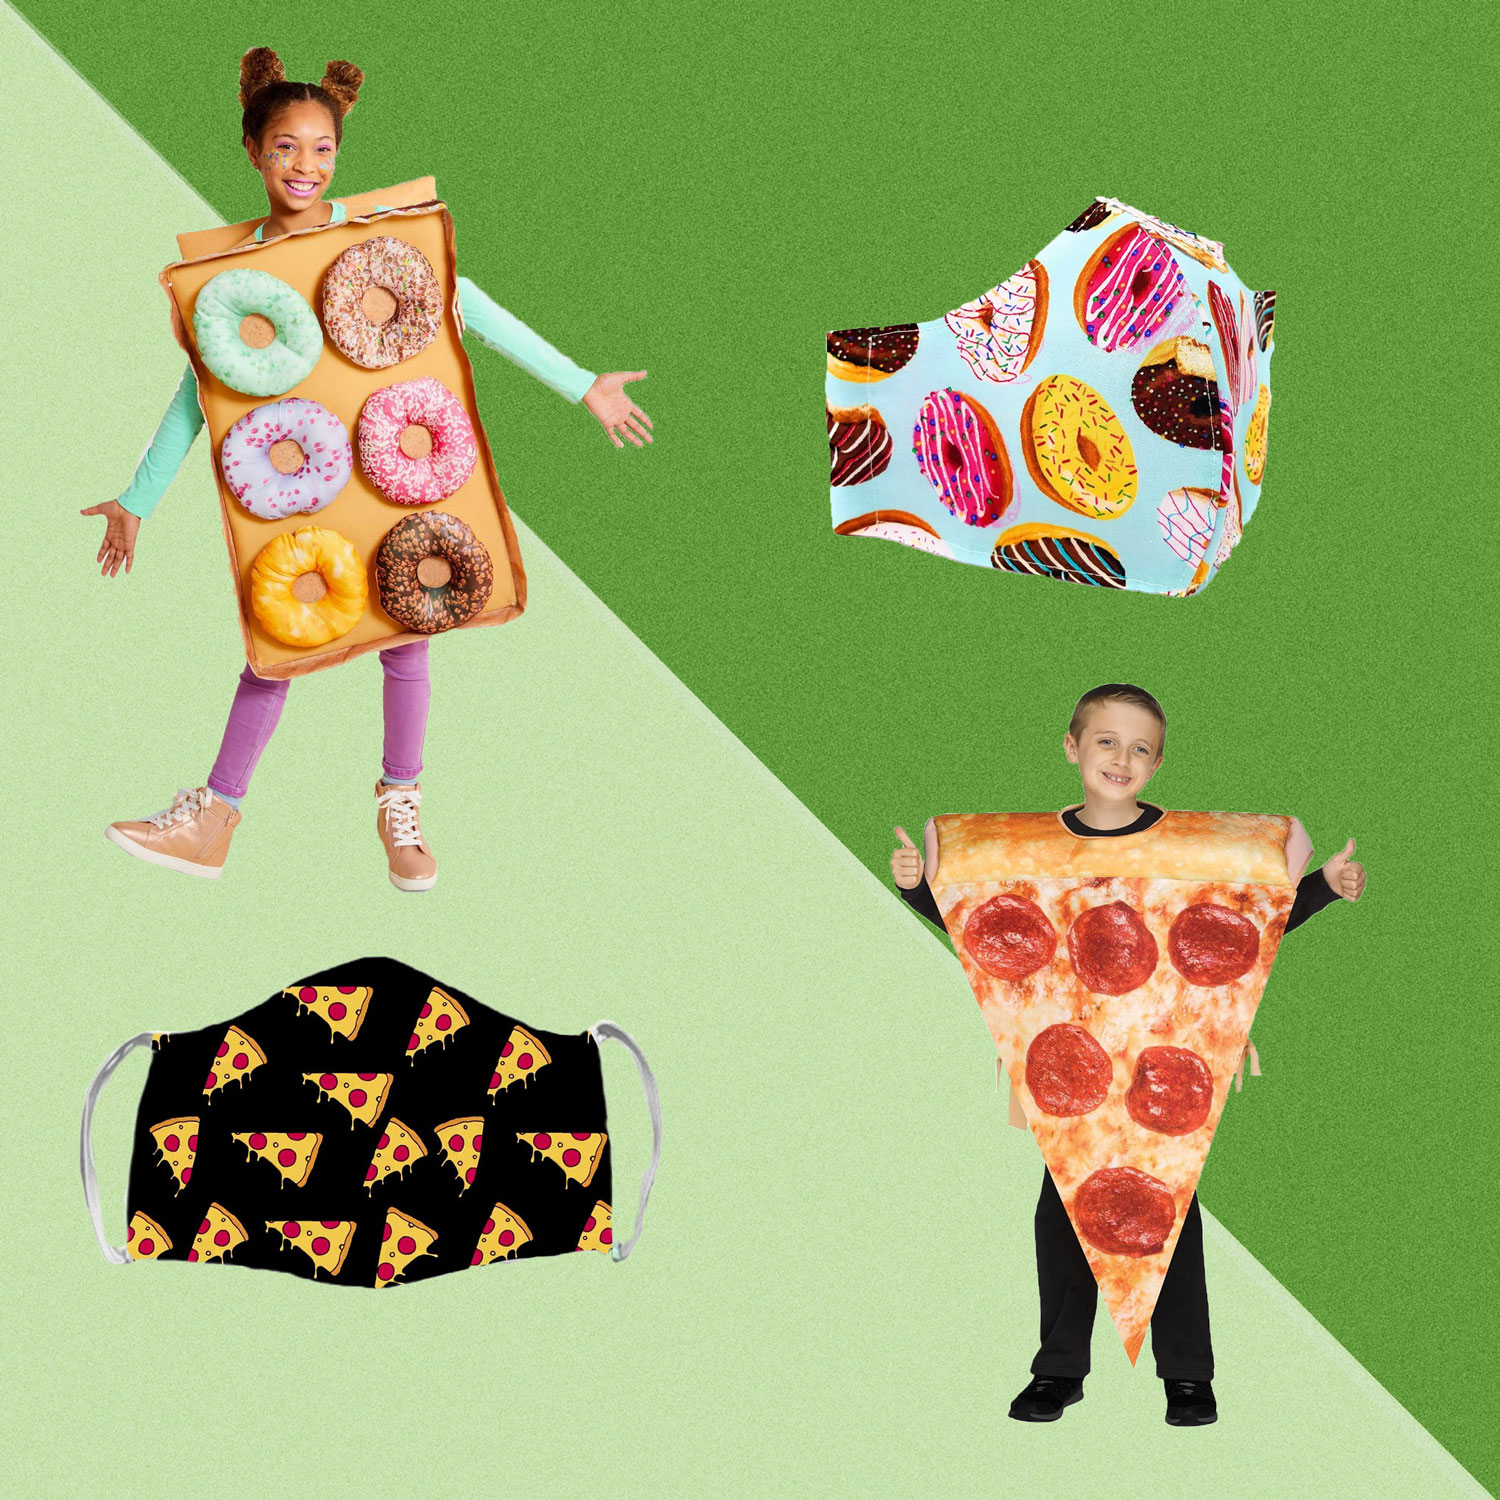 Food Halloween Costumes.These Food Themed Halloween Costume Ideas Are Perfect For Kids Eatingwell